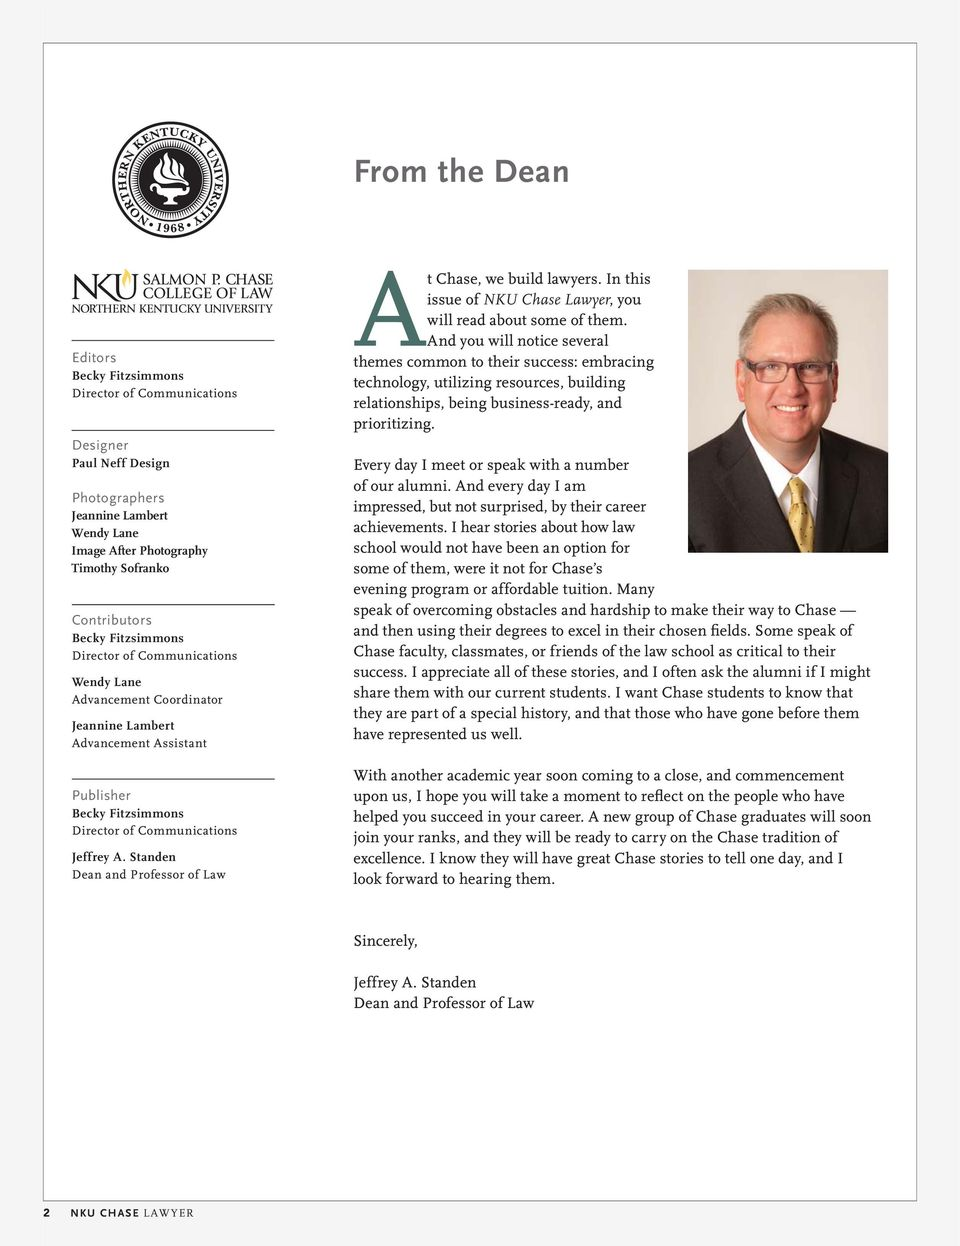 Standen Dean and Professor of Law At Chase, we build lawyers. In this issue of NKU Chase Lawyer, you will read about some of them.